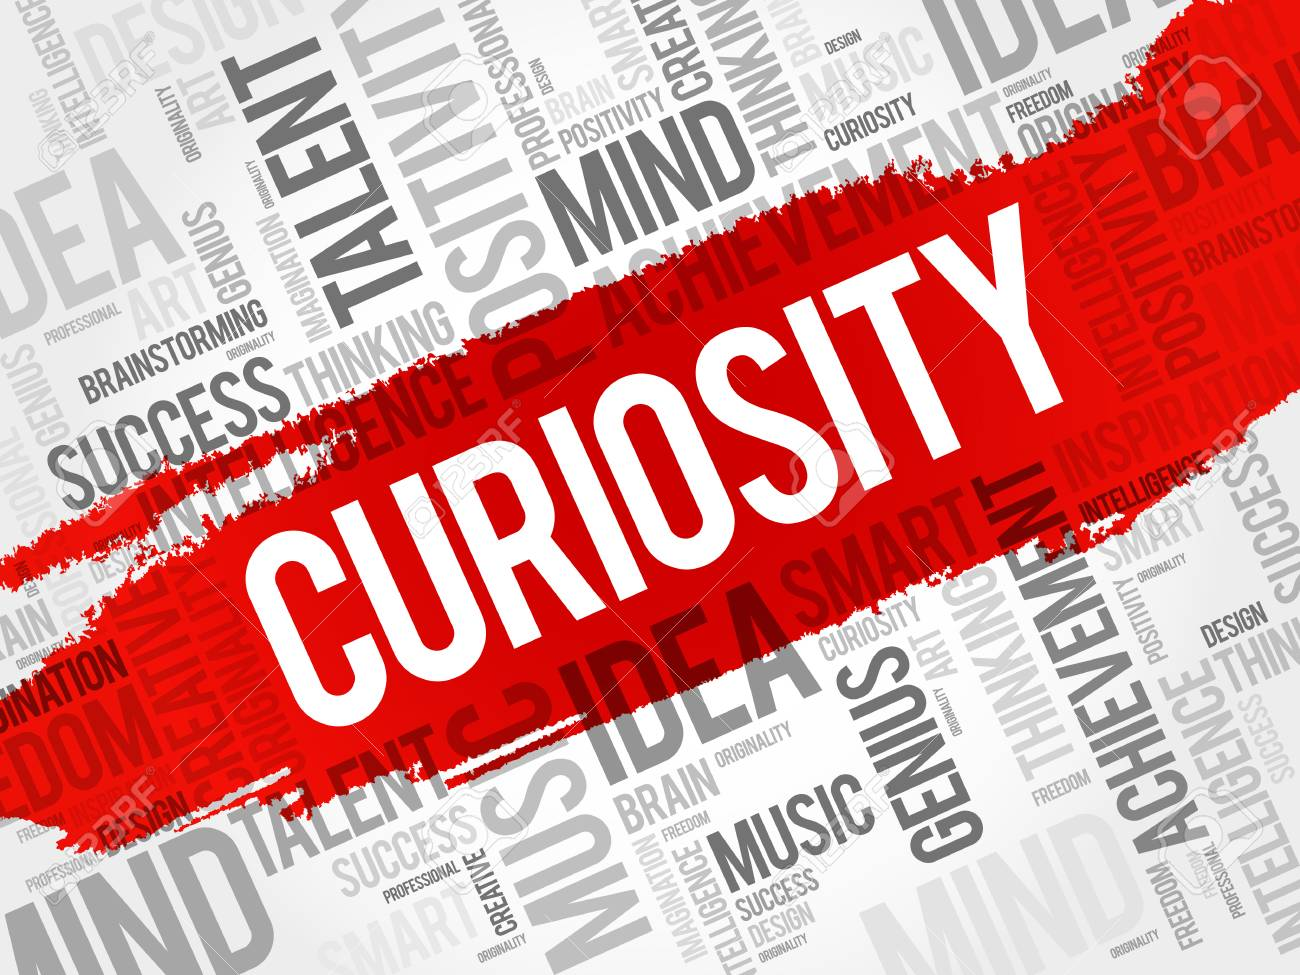 Curiosity word cloud collage, creative business concept background - 97574735